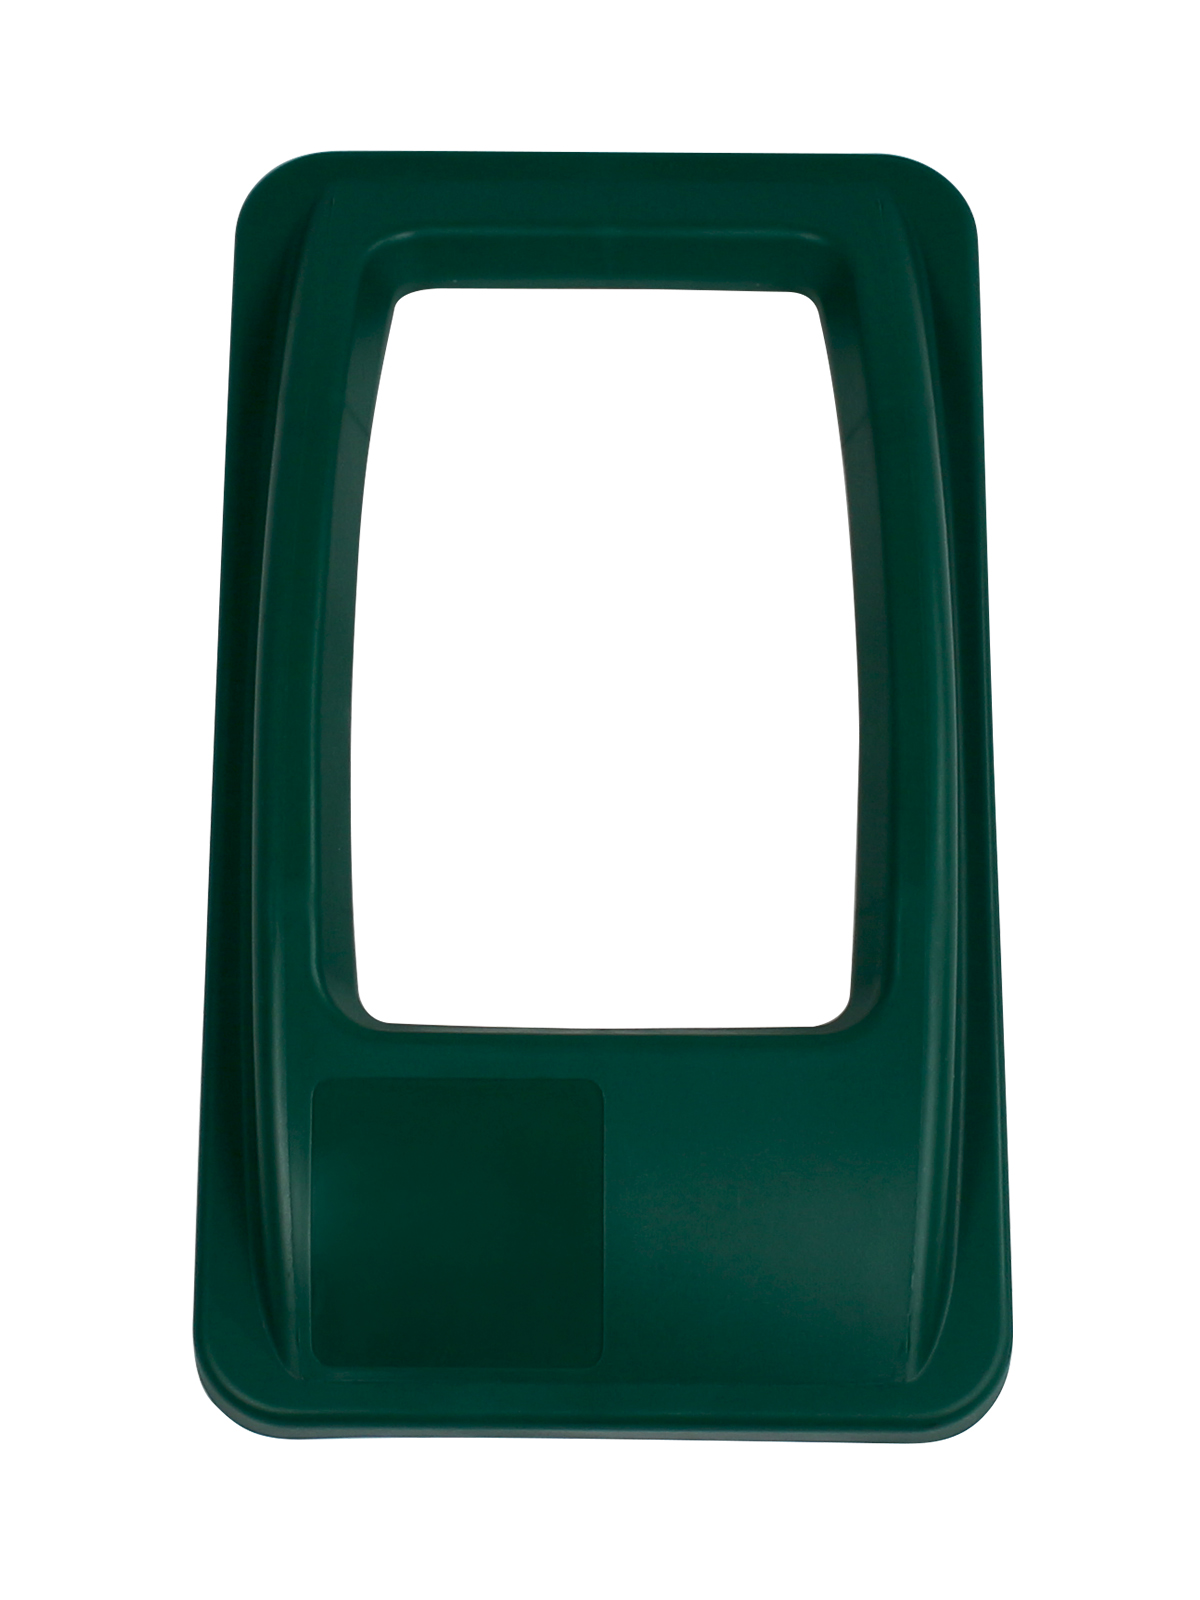 WASTE WATCHER - Single - Lid - Full - Dark Green